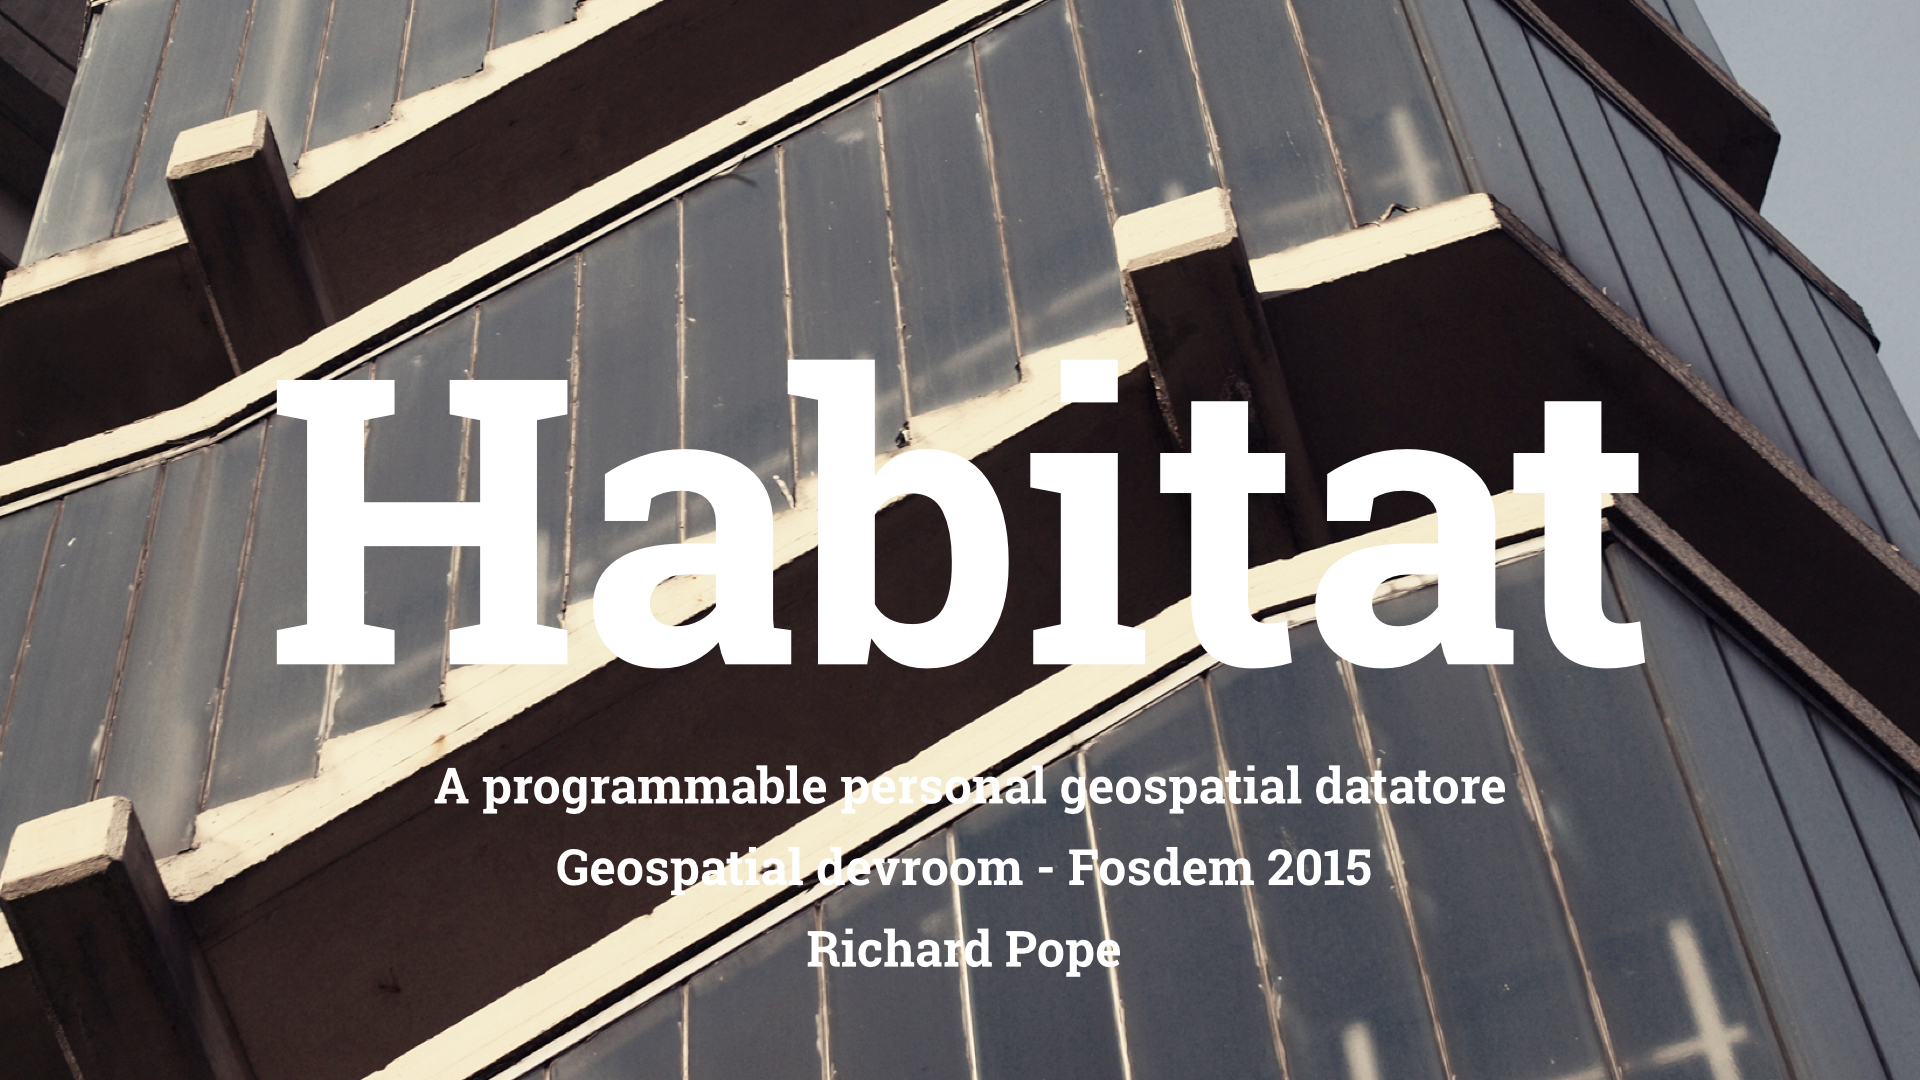 Slide 1 - Habitat - A programmable personal geospatial datatoreGeospatial devroom - Fosdem 2015 Richard Pope